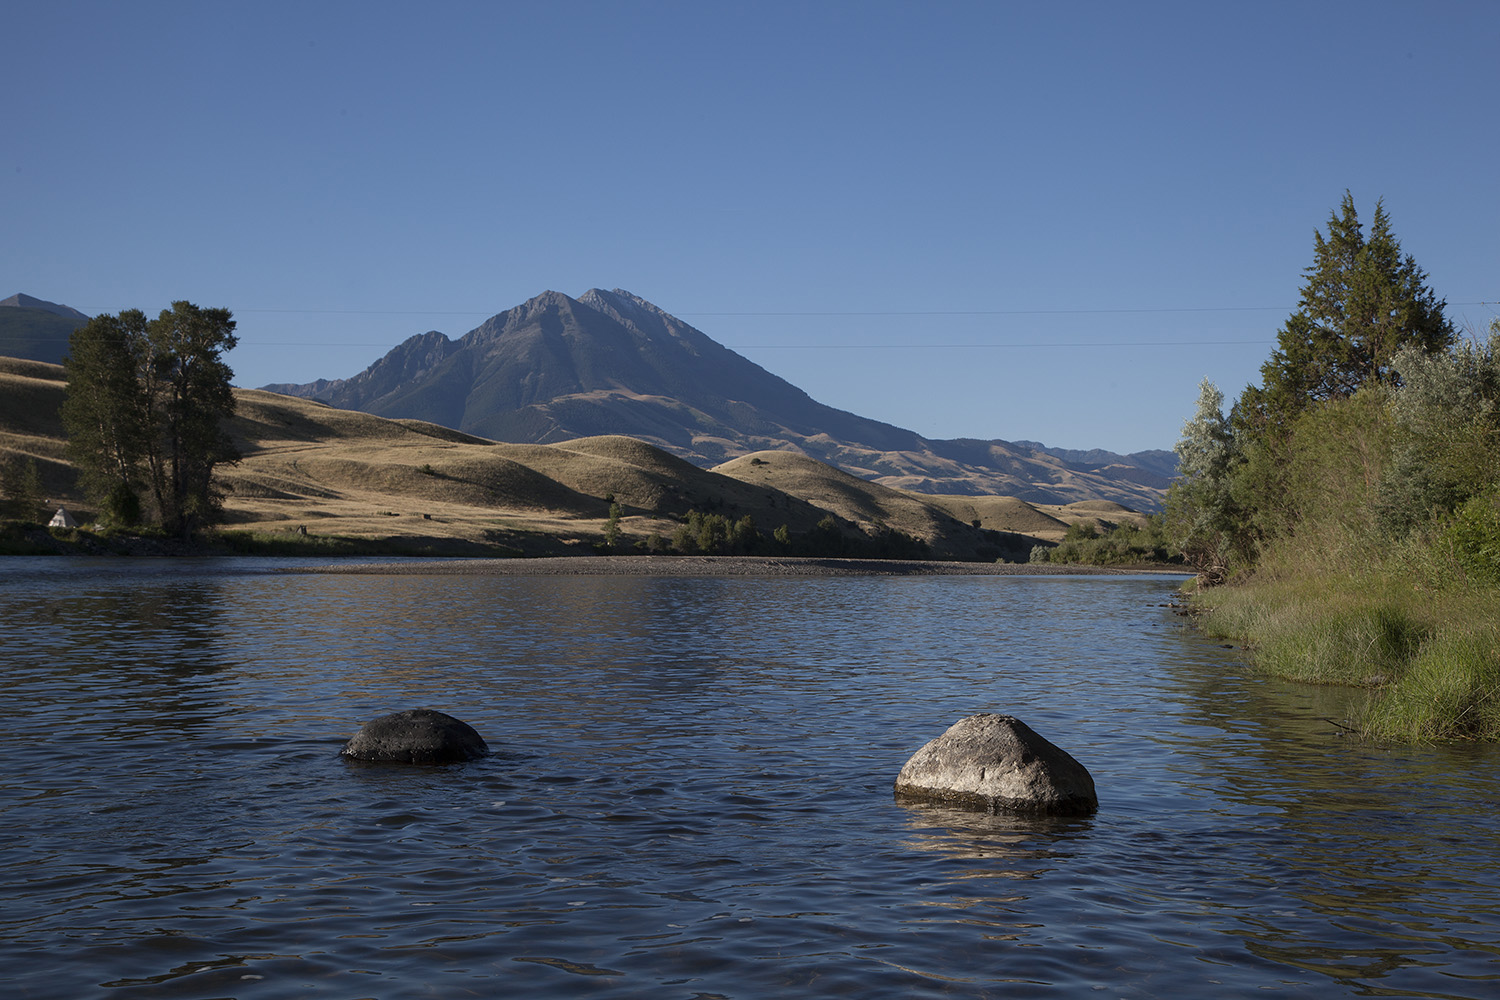 Yellowstone and Emigrant Peak